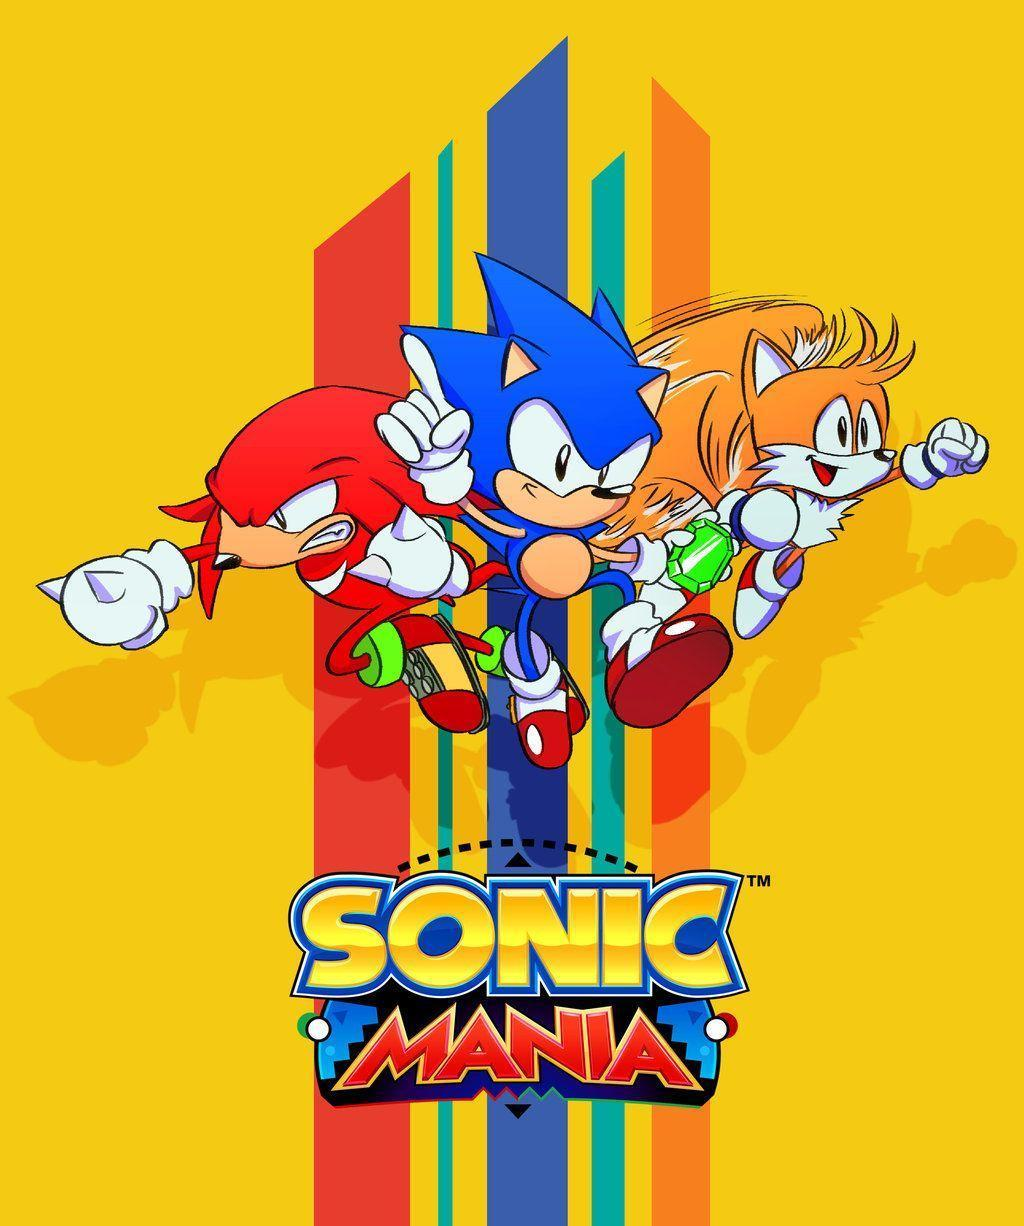 Sonic Mania Wallpapers Wallpaper Cave